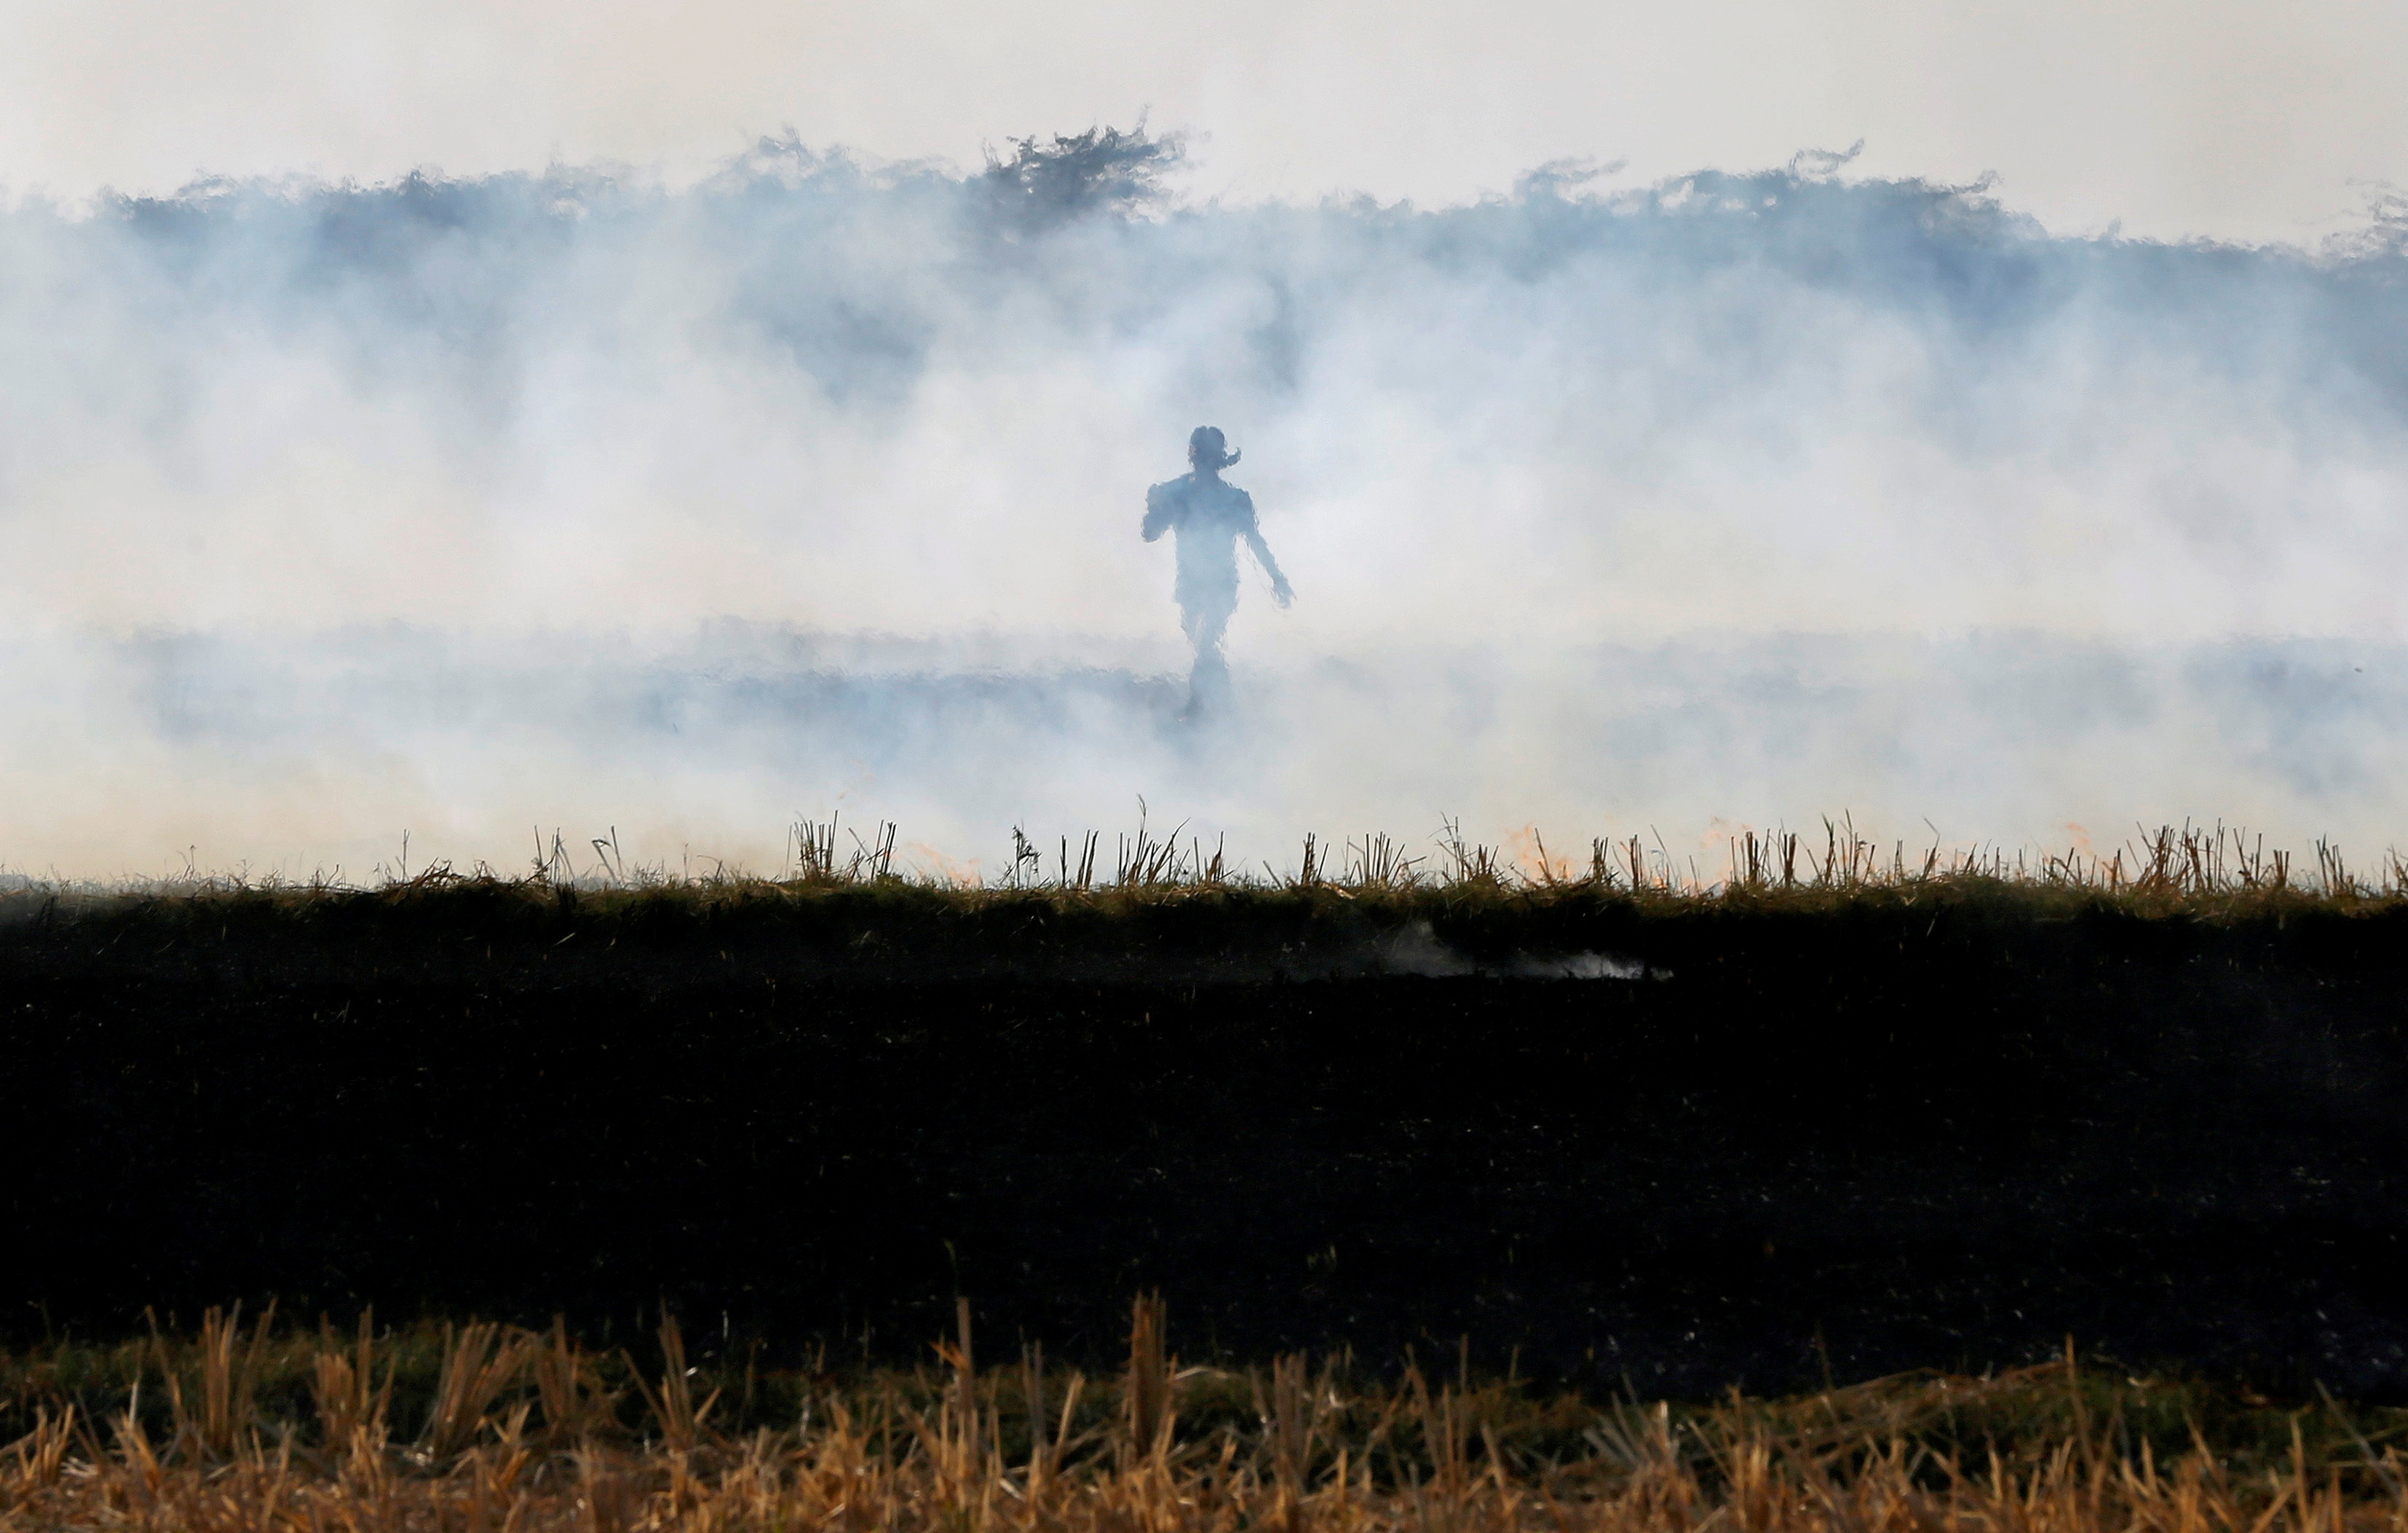 A farmer burns paddy waste stubble in a field on the outskirts of Ahmedabad, India November 15, 2017. REUTERS/Amit Dave     TPX IMAGES OF THE DAY/File Photo